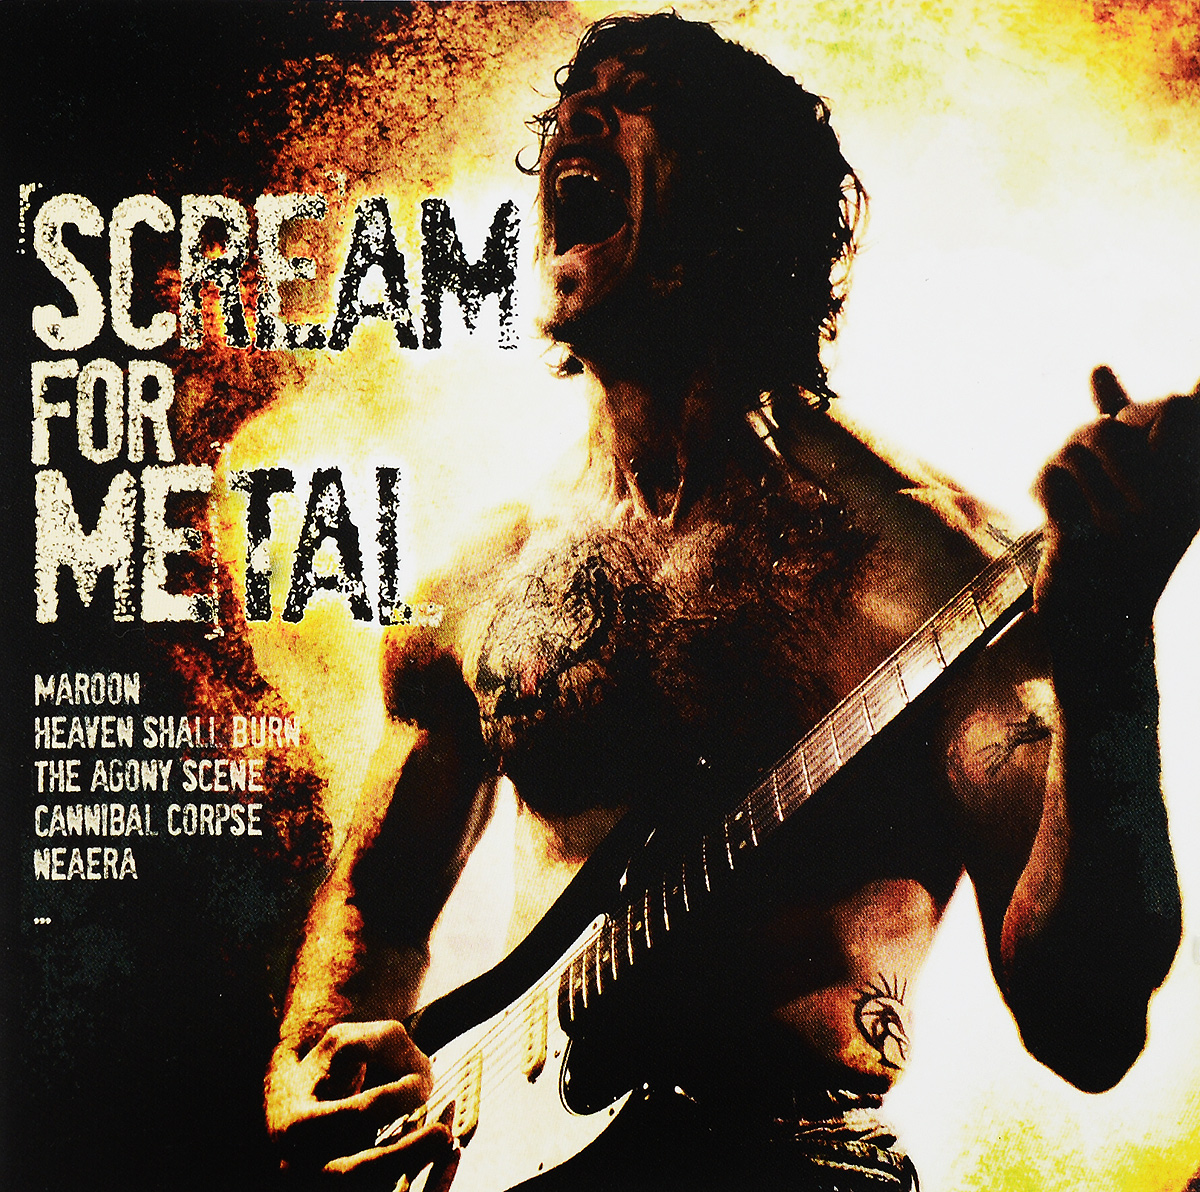 Maroon,Cannibal Corpse,Heaven Shall Burn,As I Lay Dying,Smaxone,The Agony Scene,Legion Of The Damned,Neaera,Stam1na,Engel Scream For Metal agony [pc]